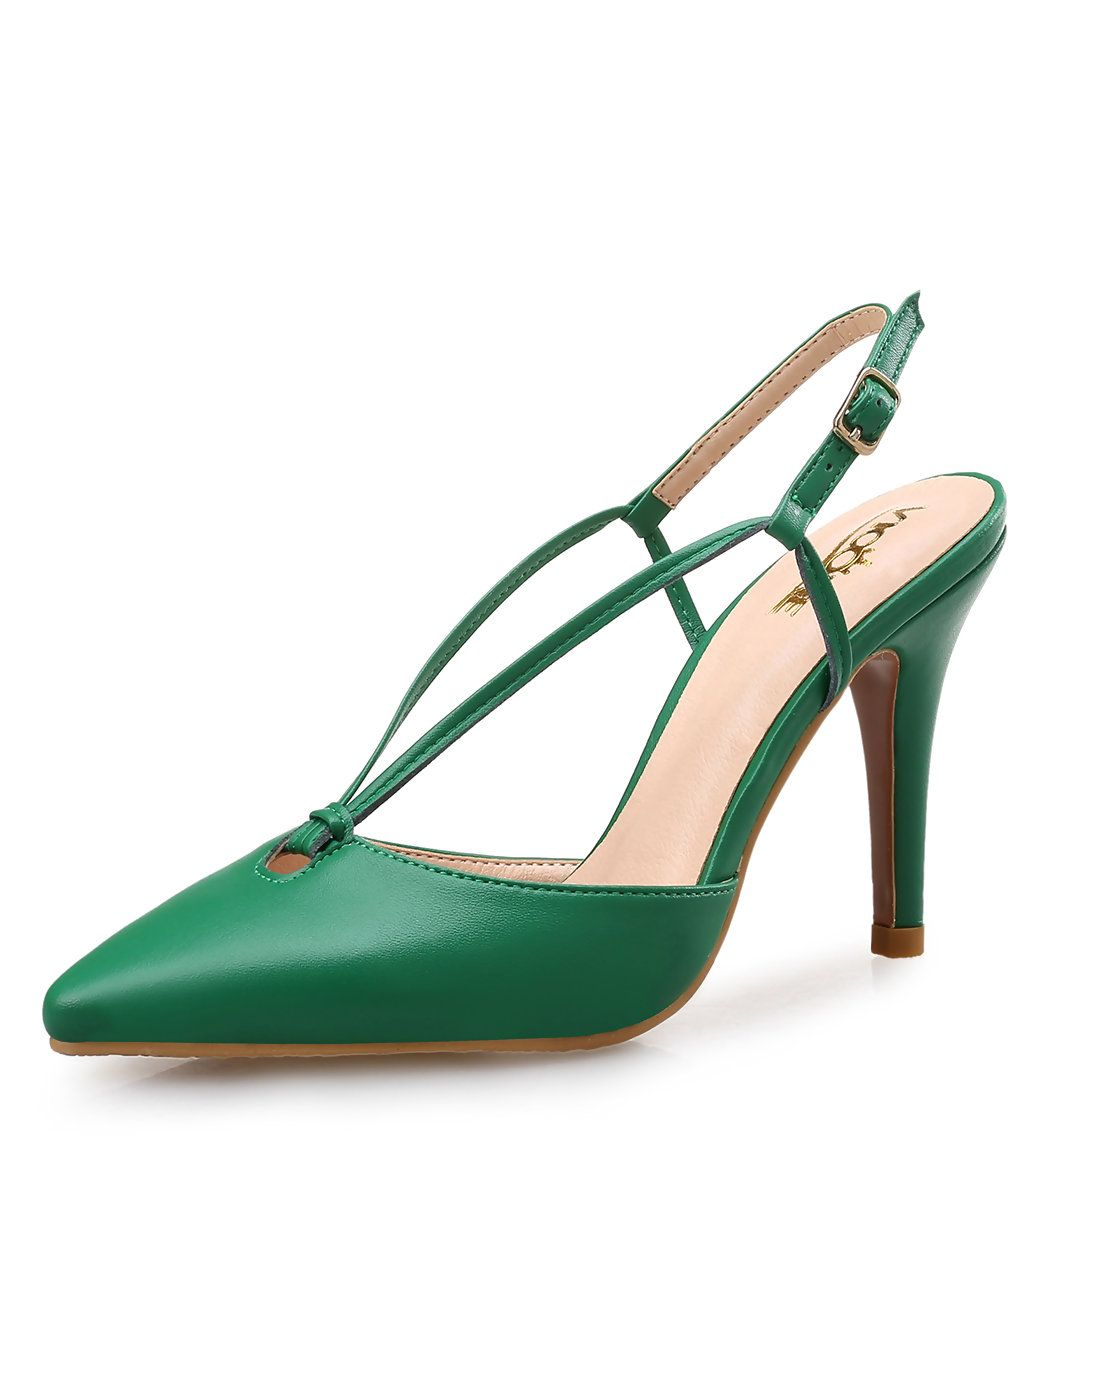 #VIPme #Shoes Green Microfiber Fashion Pointed Toe Lace Up High Heel Pumps. Find more fashion inspiration at VIPme.com